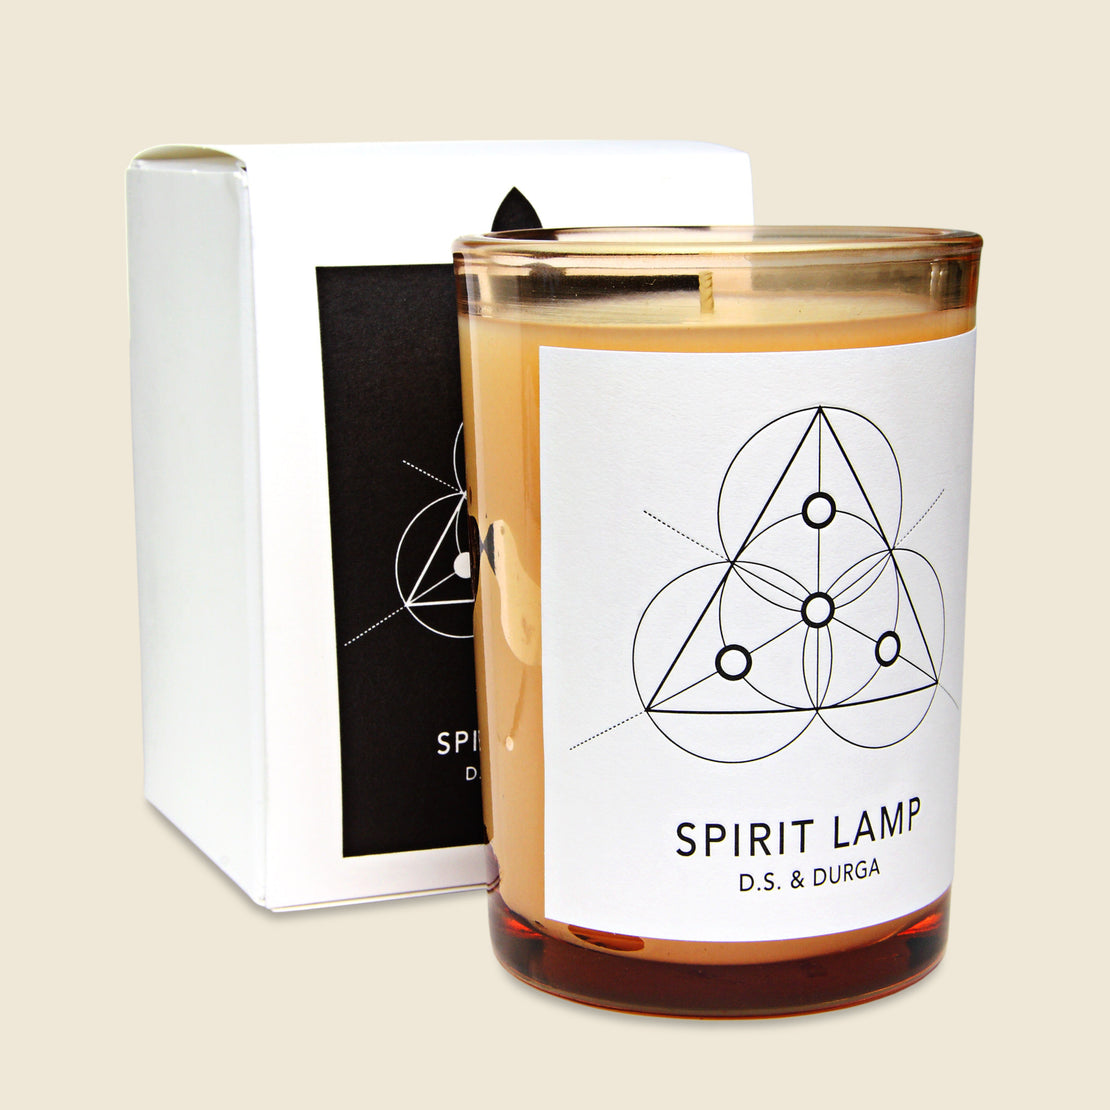 D.S. & Durga Candle - Spirit Lamp